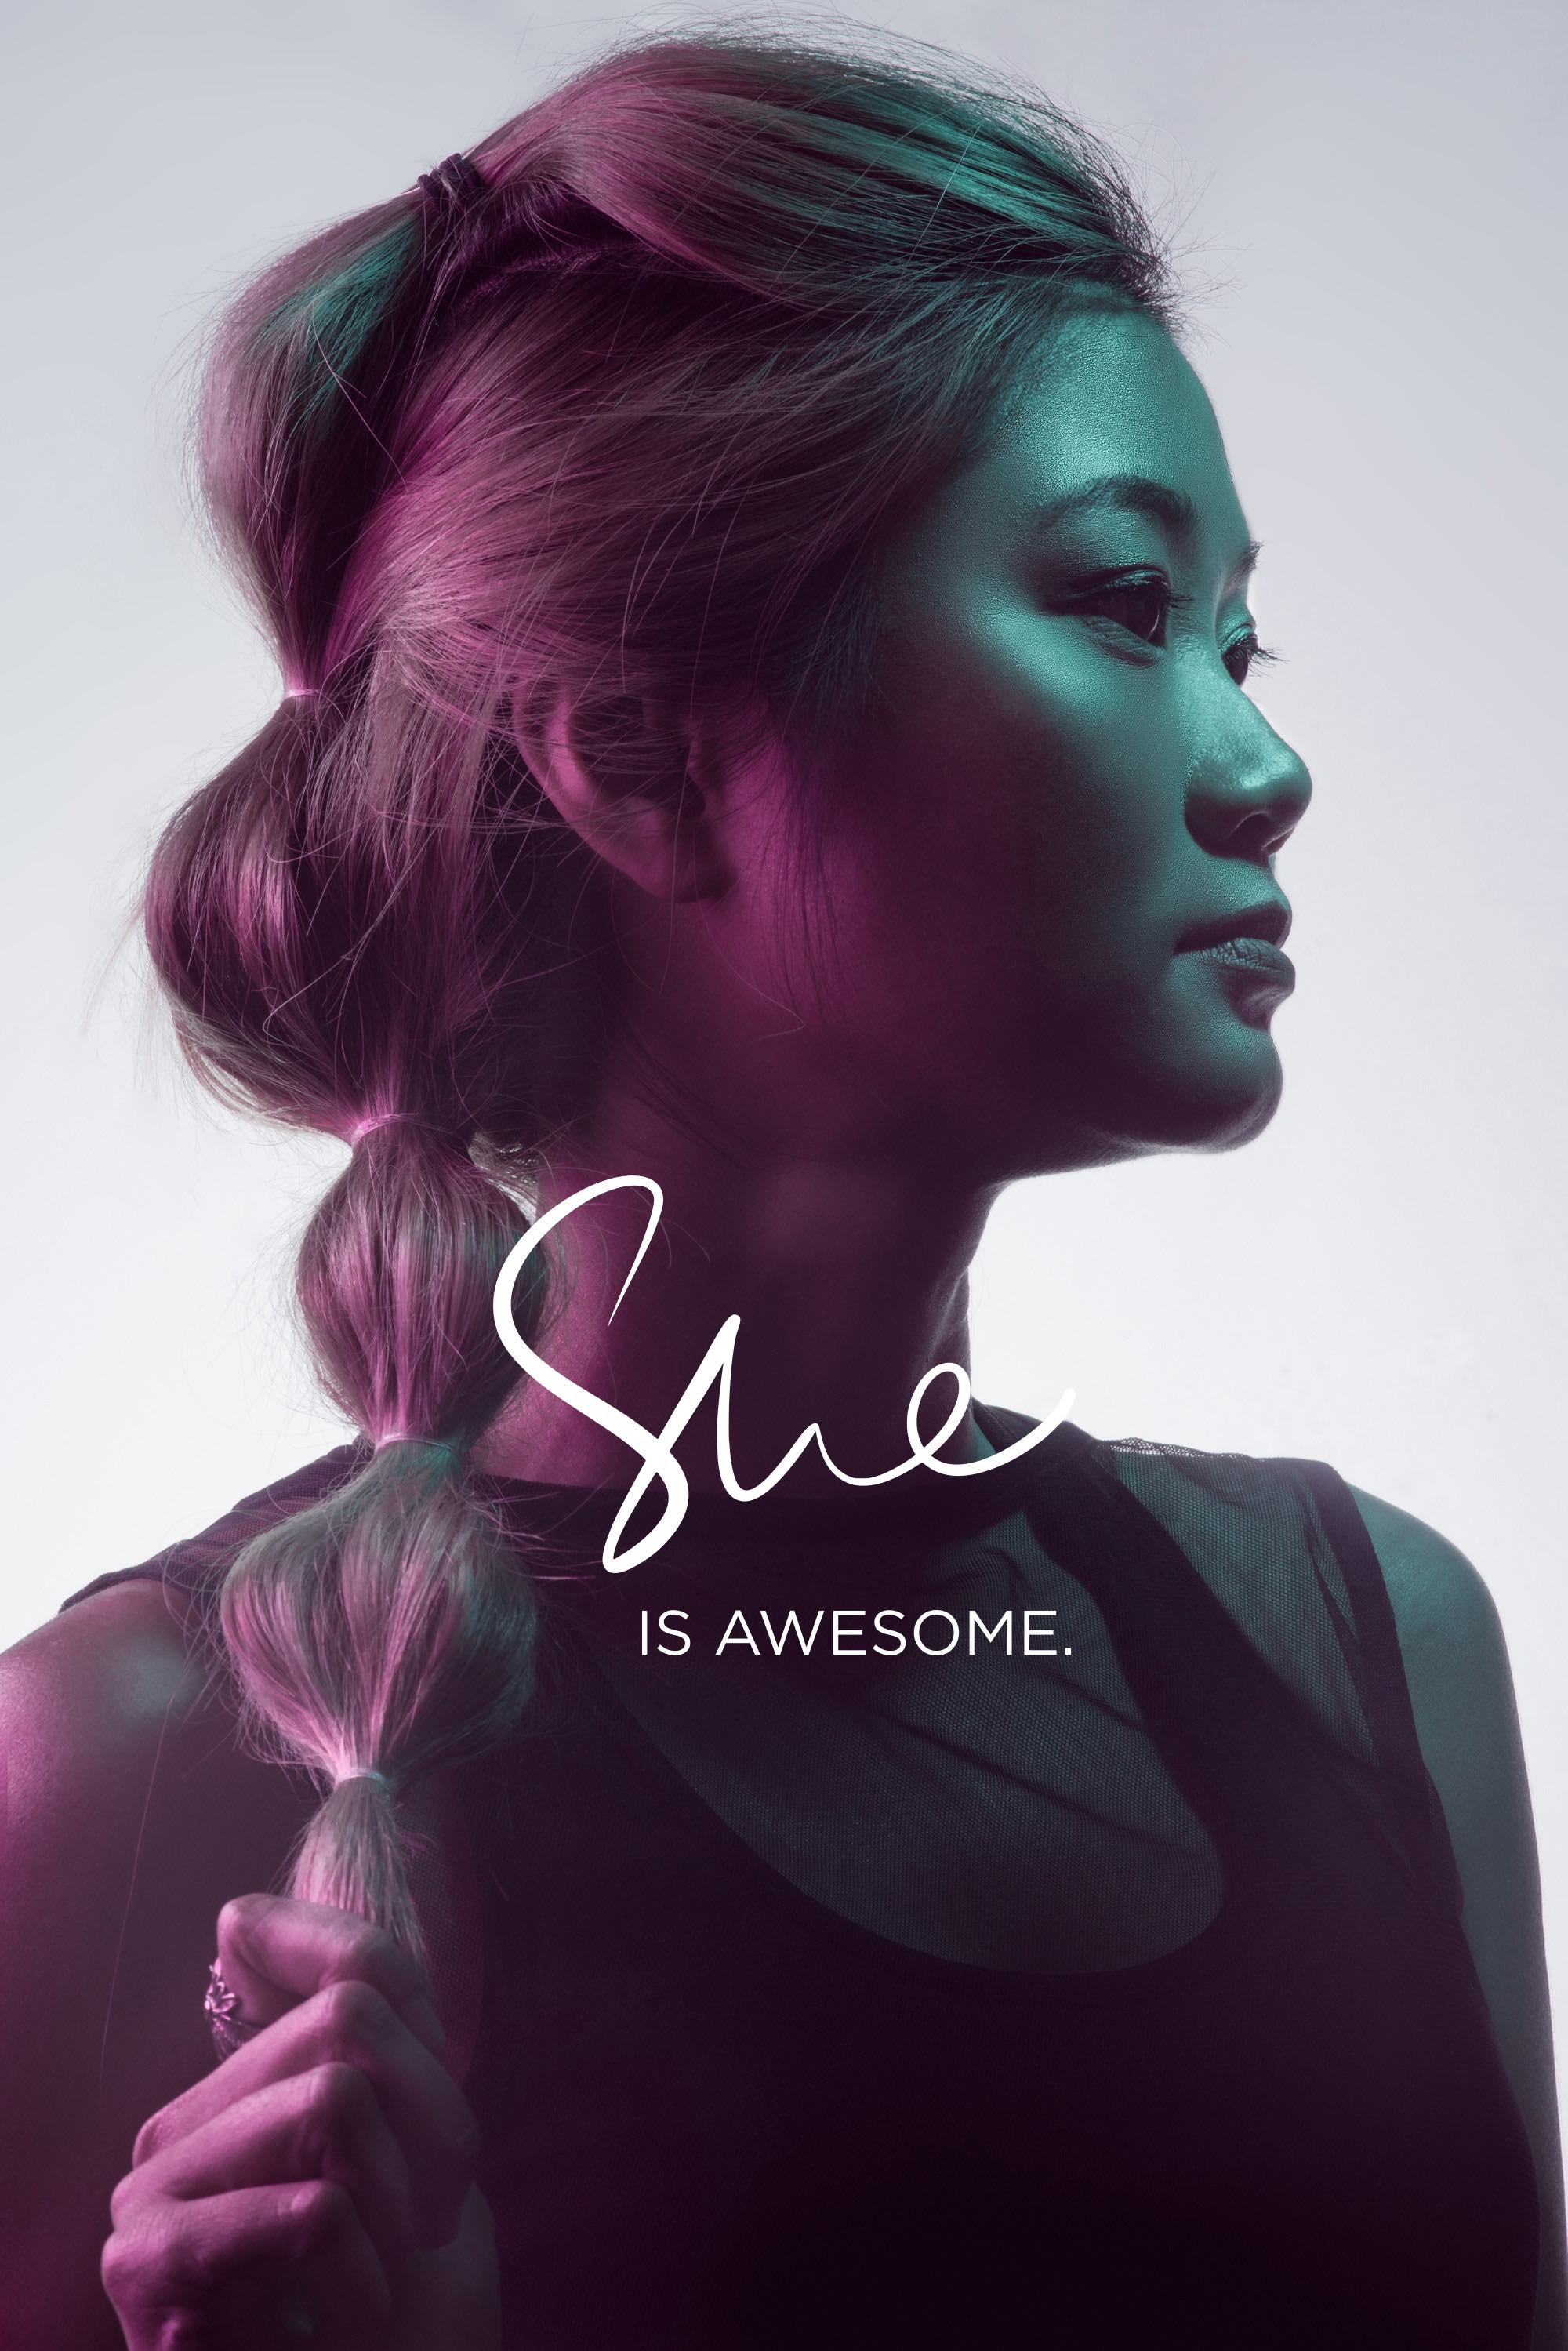 She is Awesome (S.I.A)